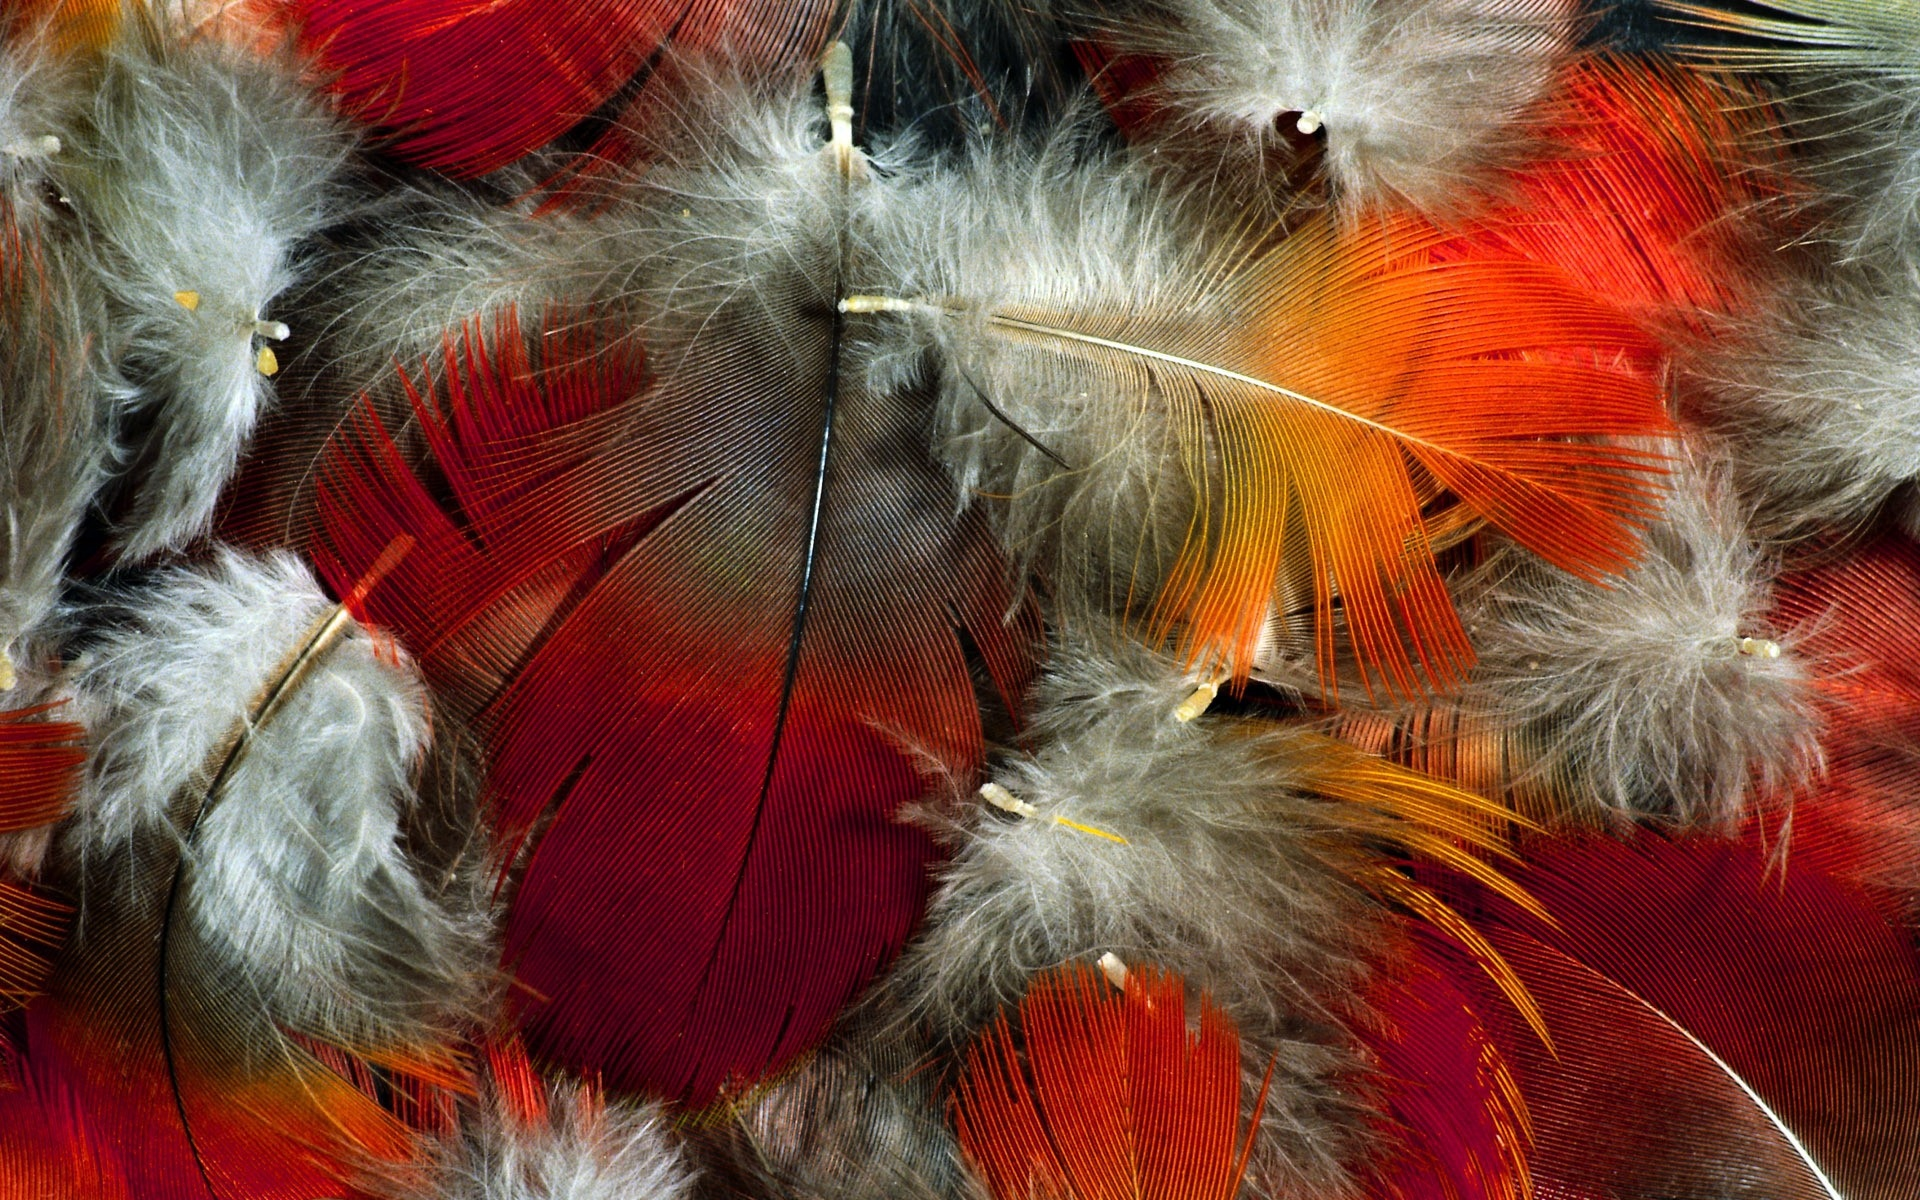 Feathers Red Orange White   Stock Photos Images HD 1920x1200